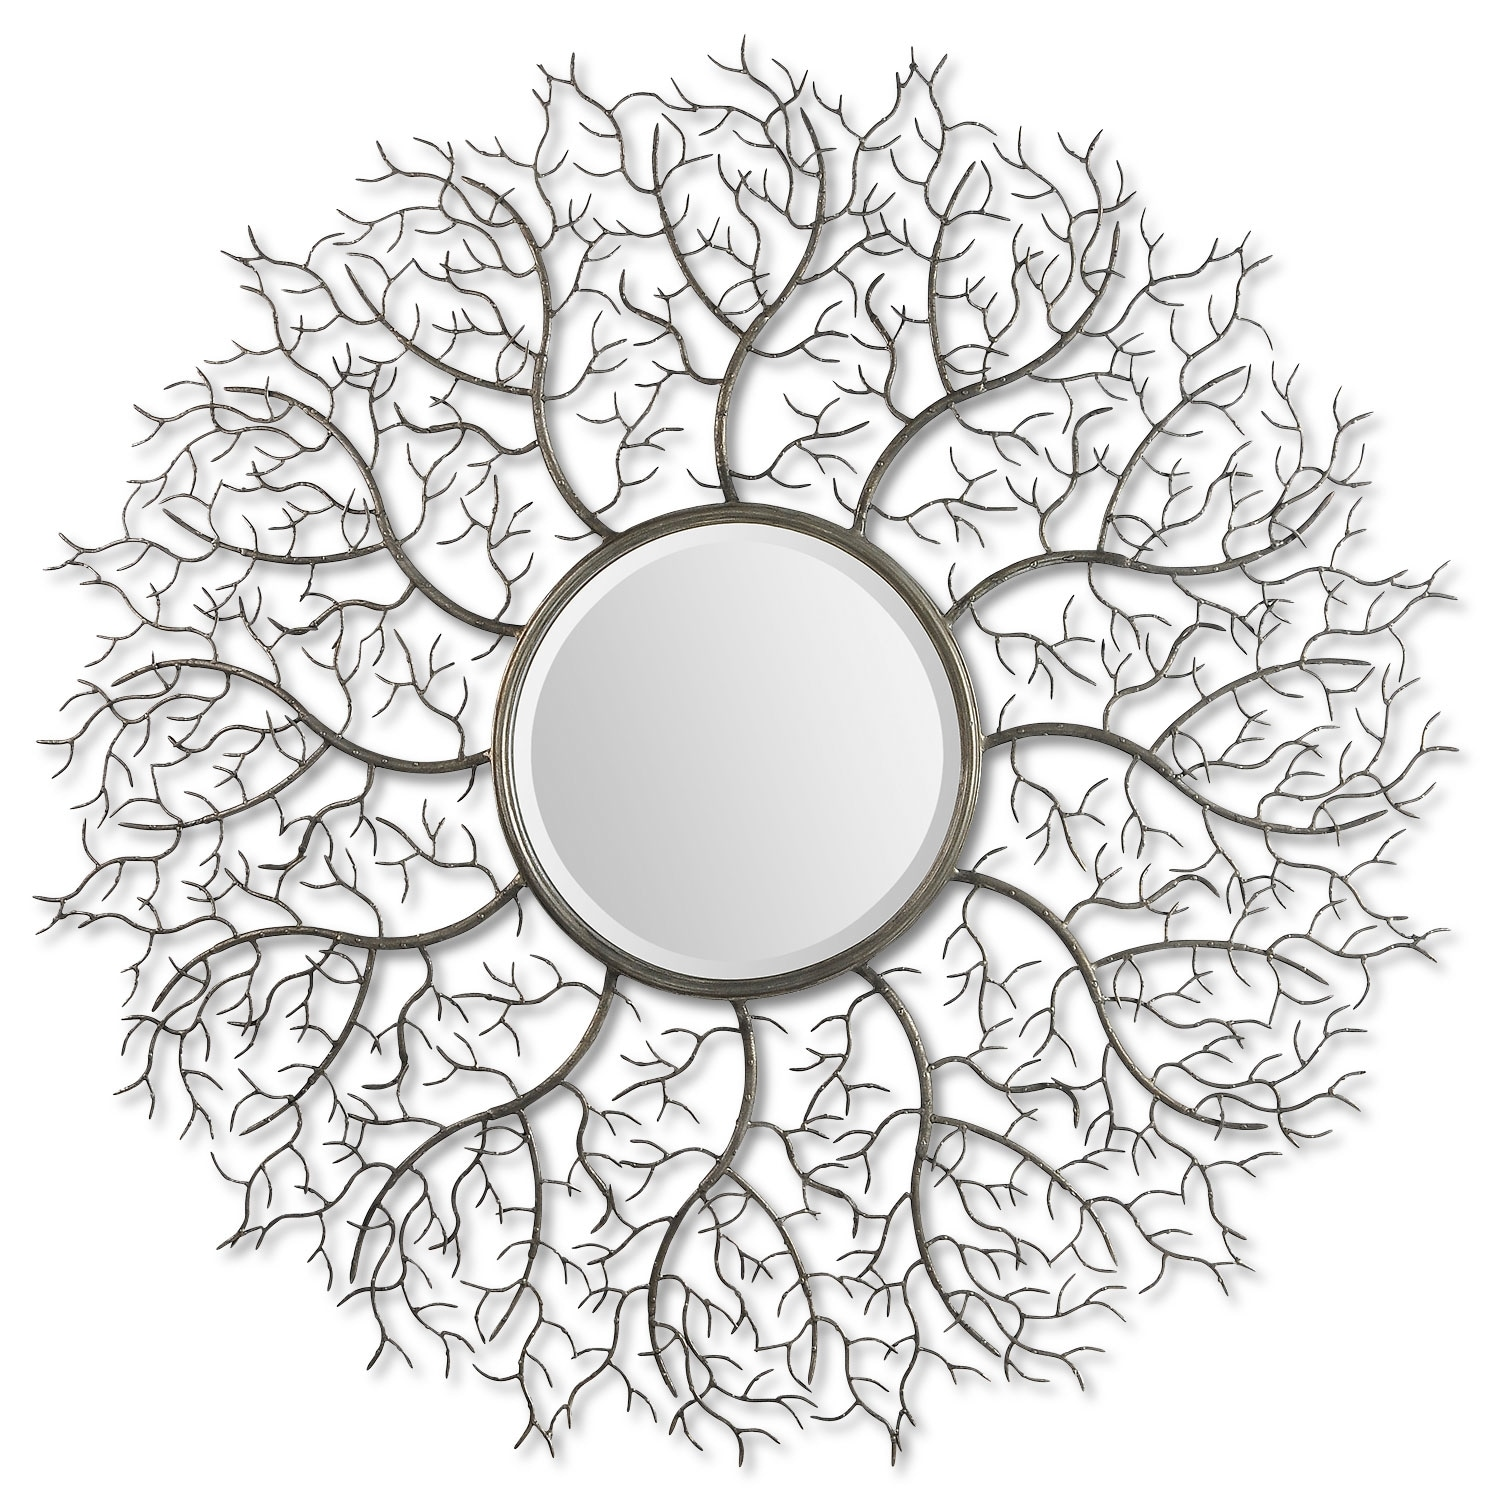 Home Accessories - Snythesis Mirror